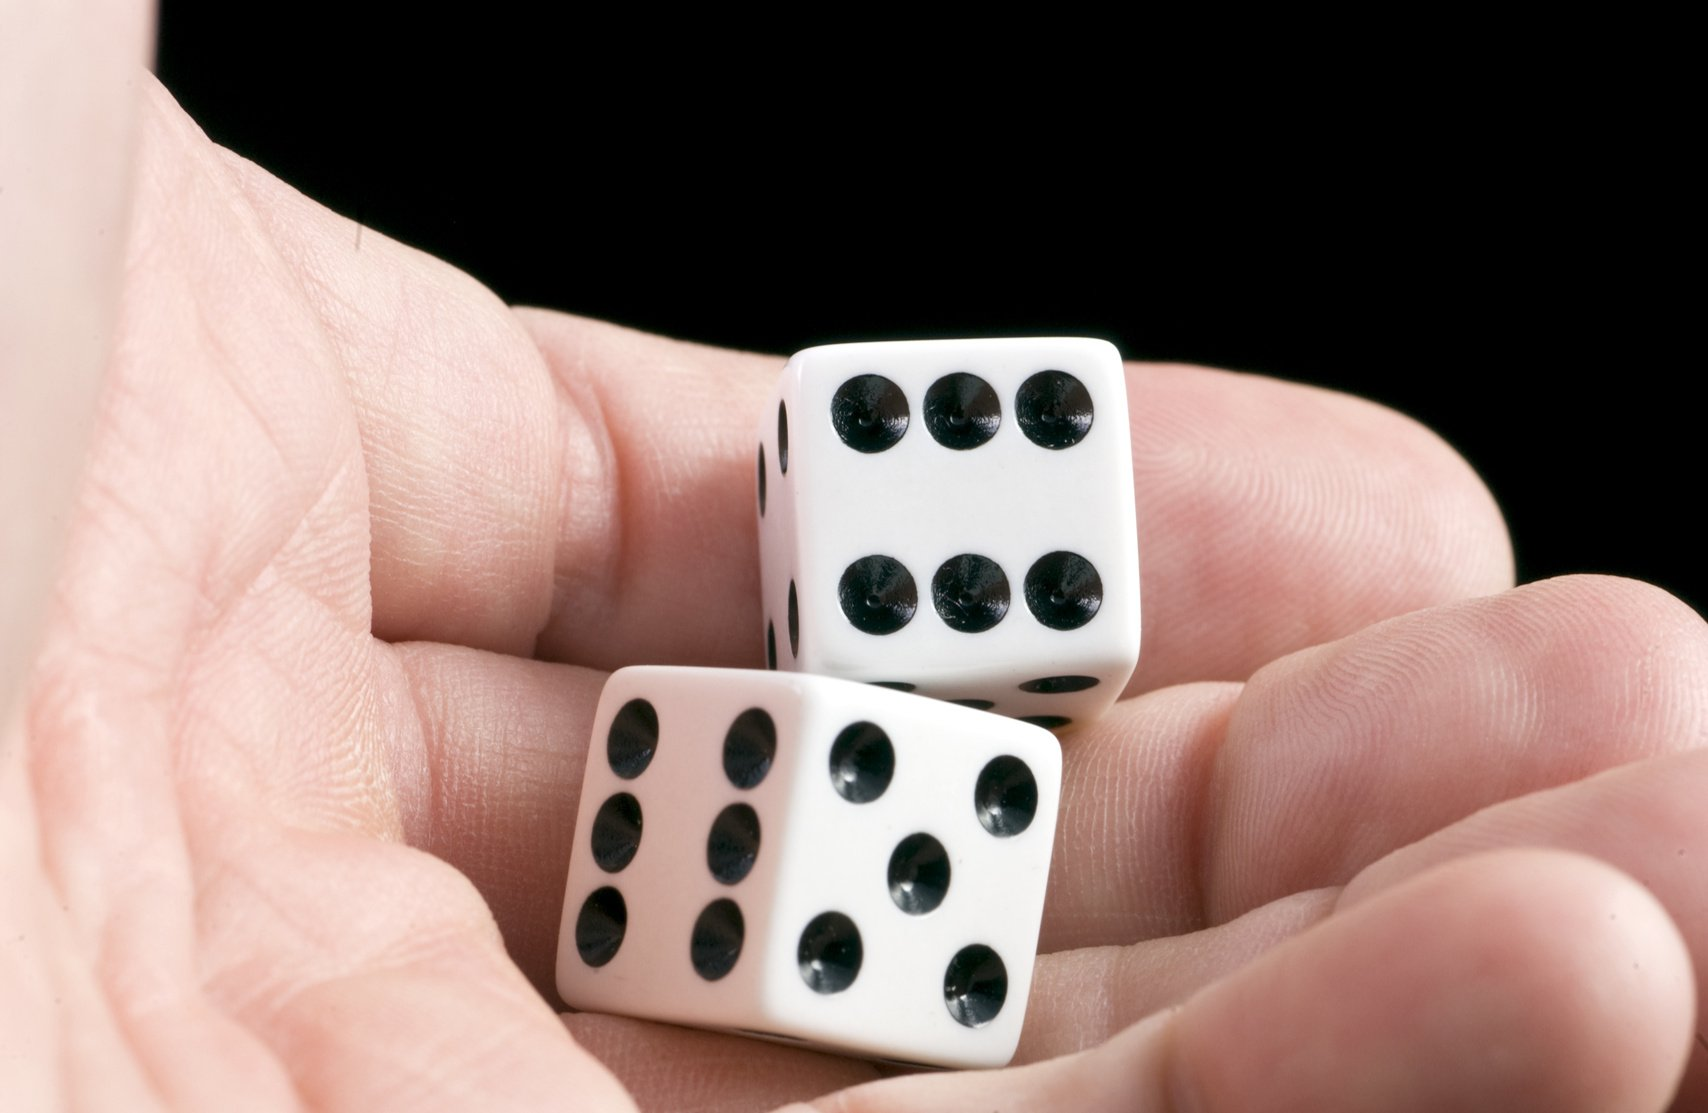 dice_hand_probability